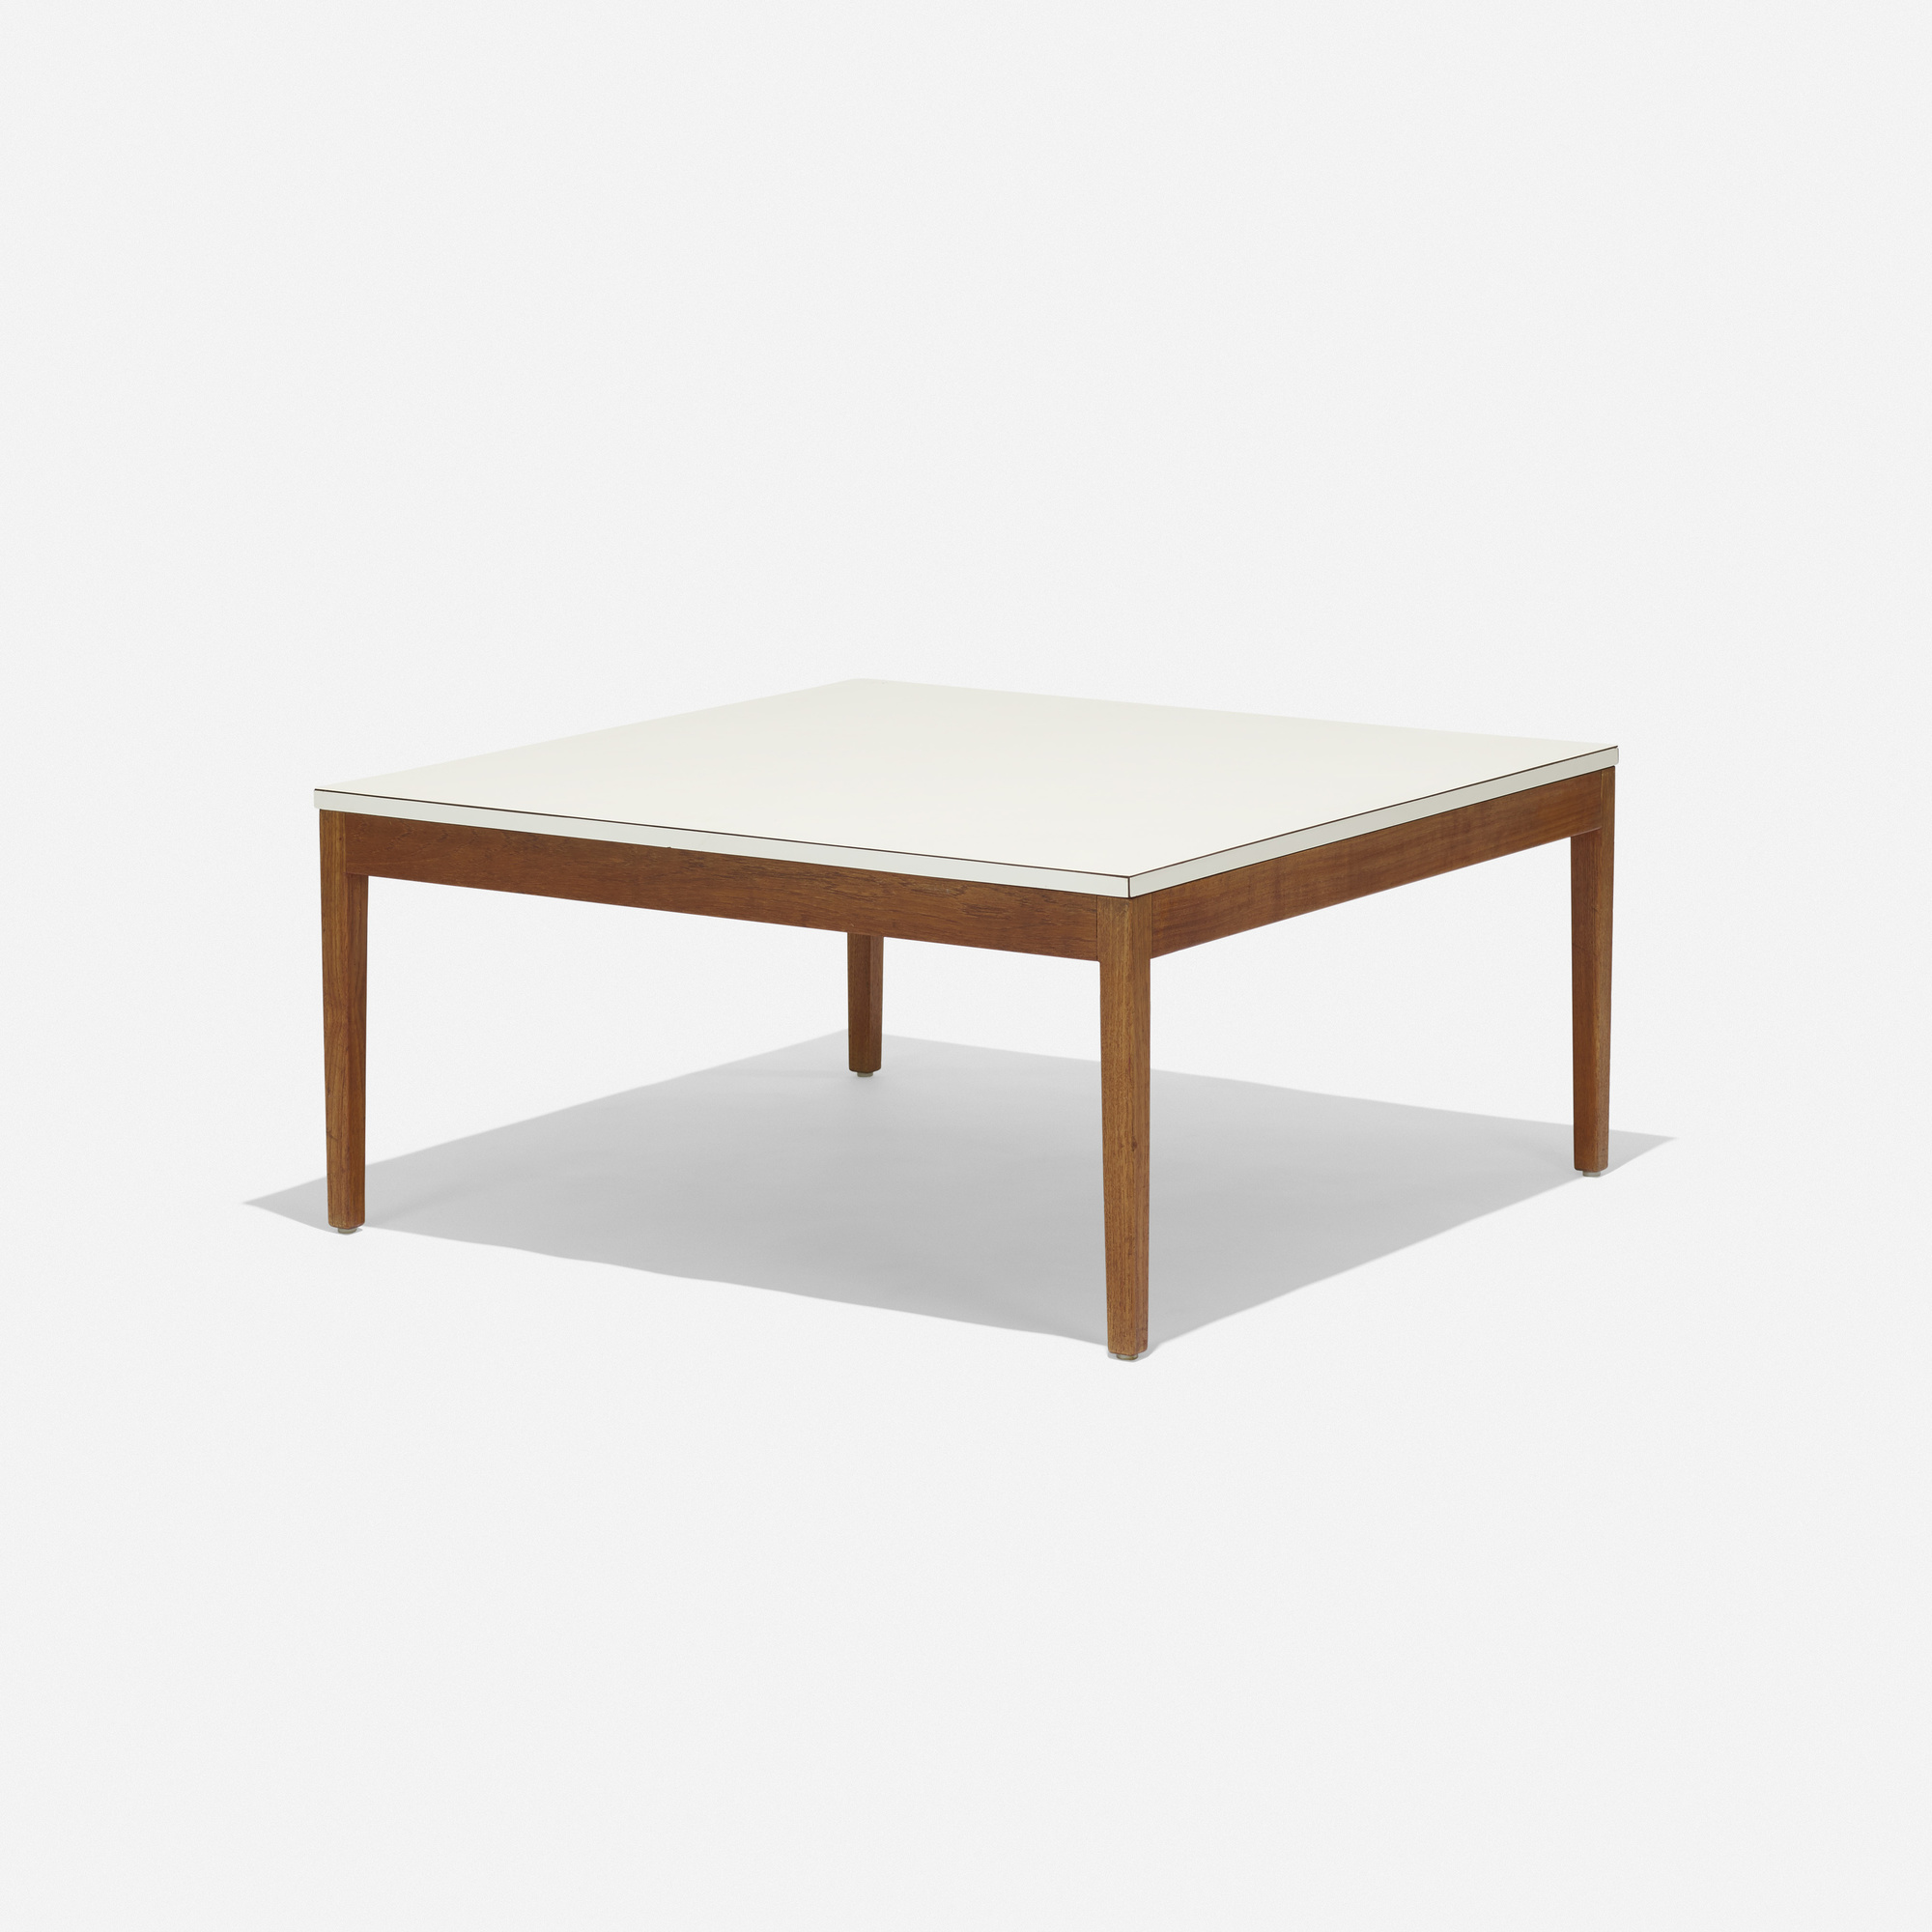 218: George Nelson U0026 Associates / Coffee Table, Model 5752 (1 Of 2